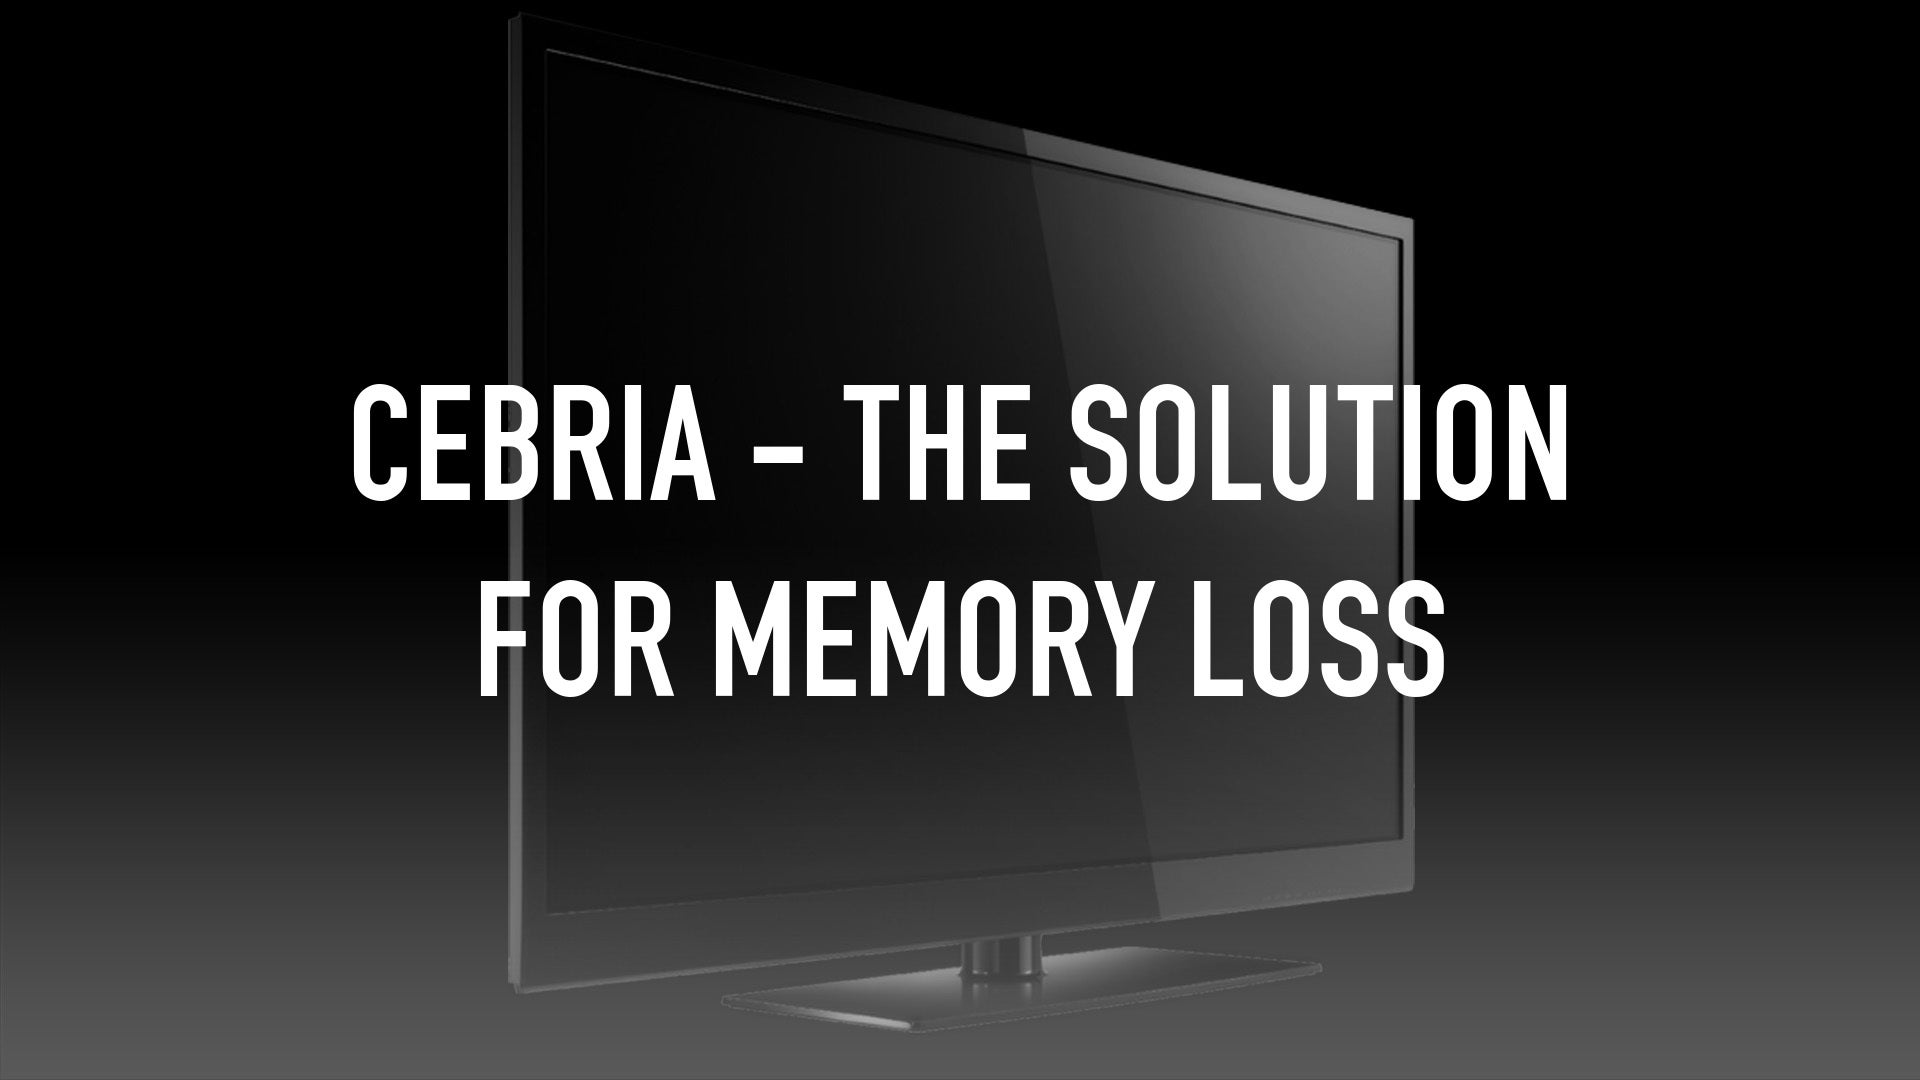 Cebria - The Solution for Memory Loss